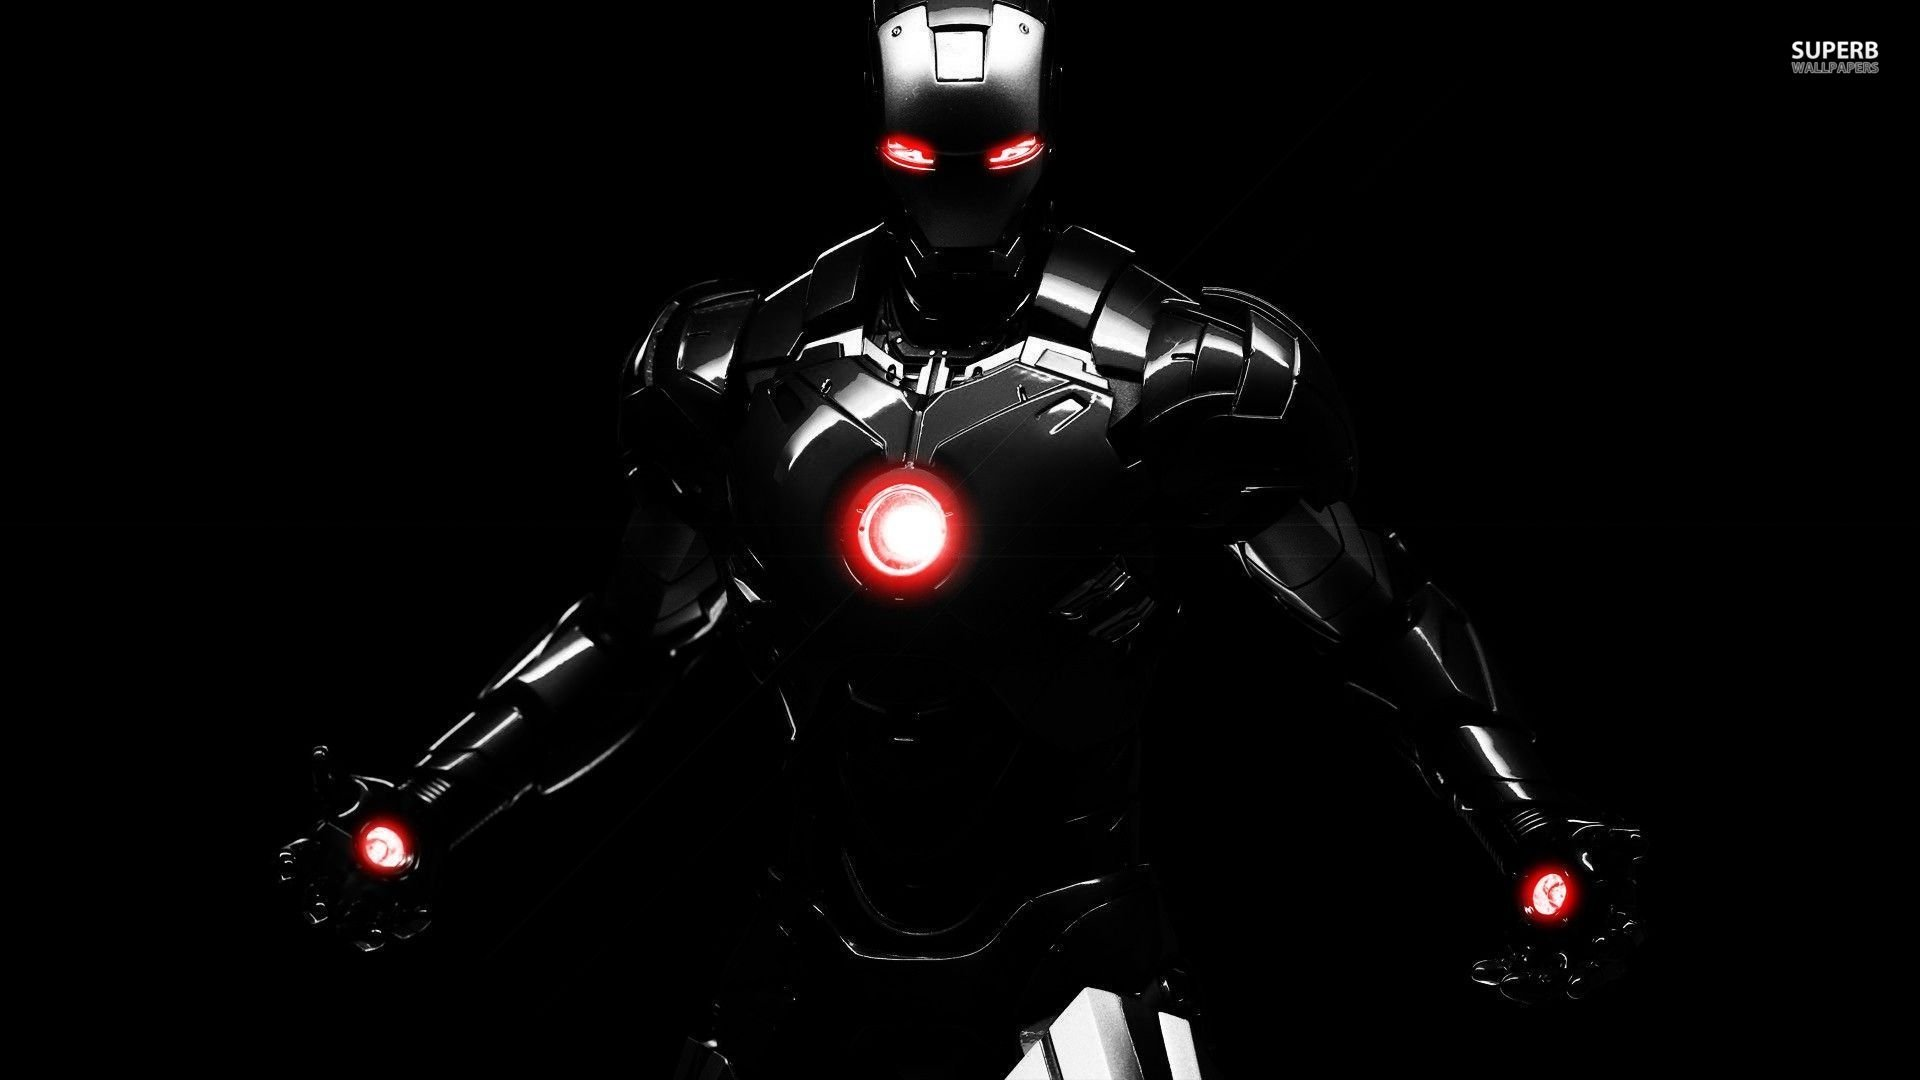 25 Cool Iron Man Wallpapers HD   MixHD wallpapers 1920x1080